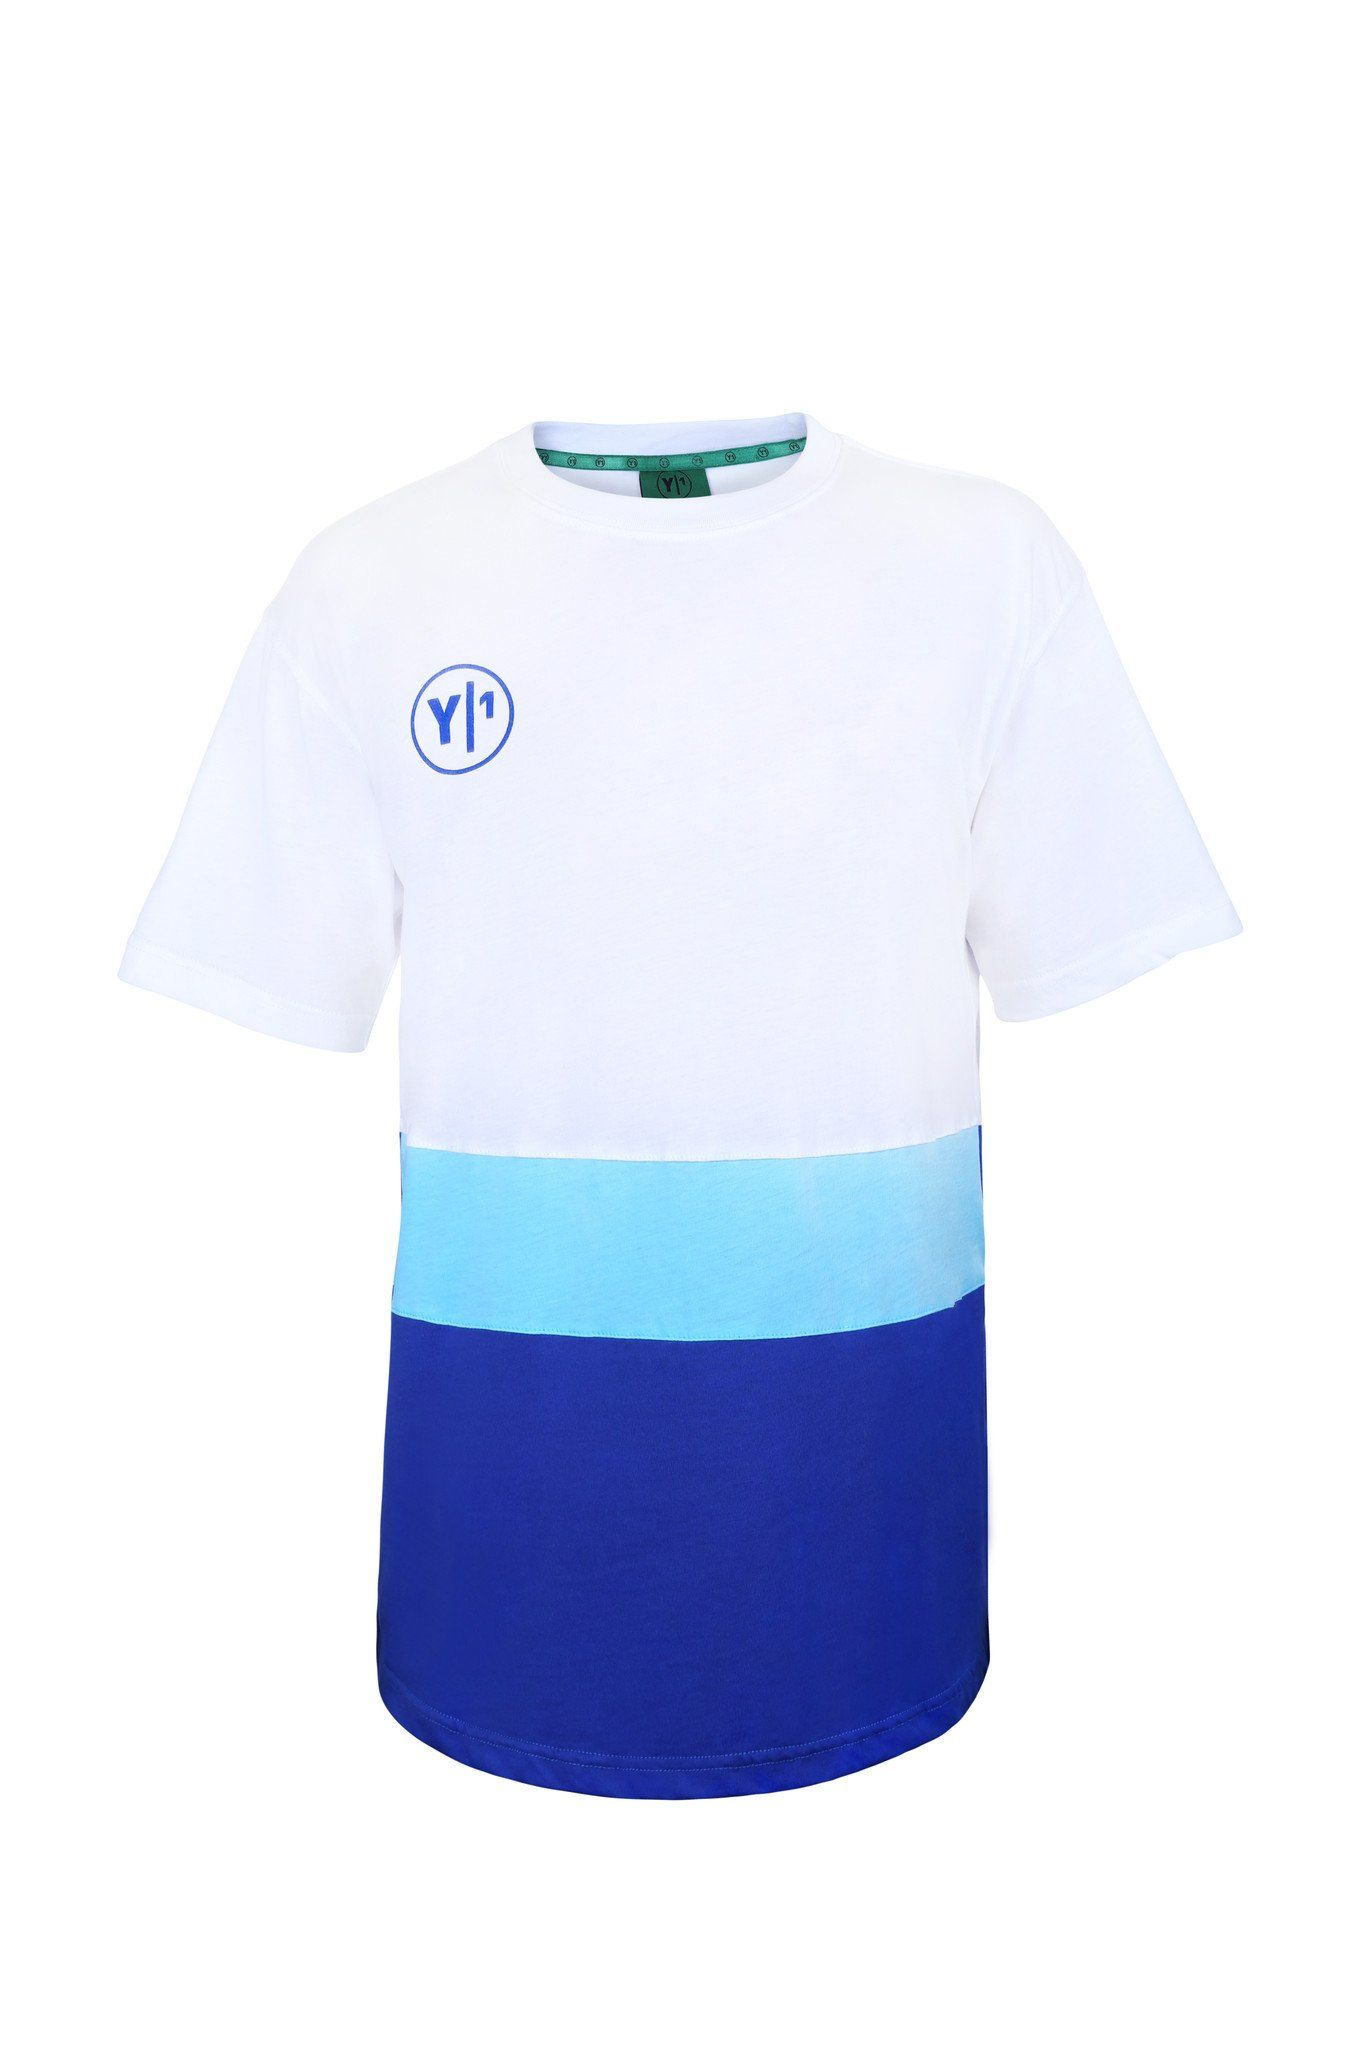 Y1 Hockey London Blue and White Retro T-shirt online kopen